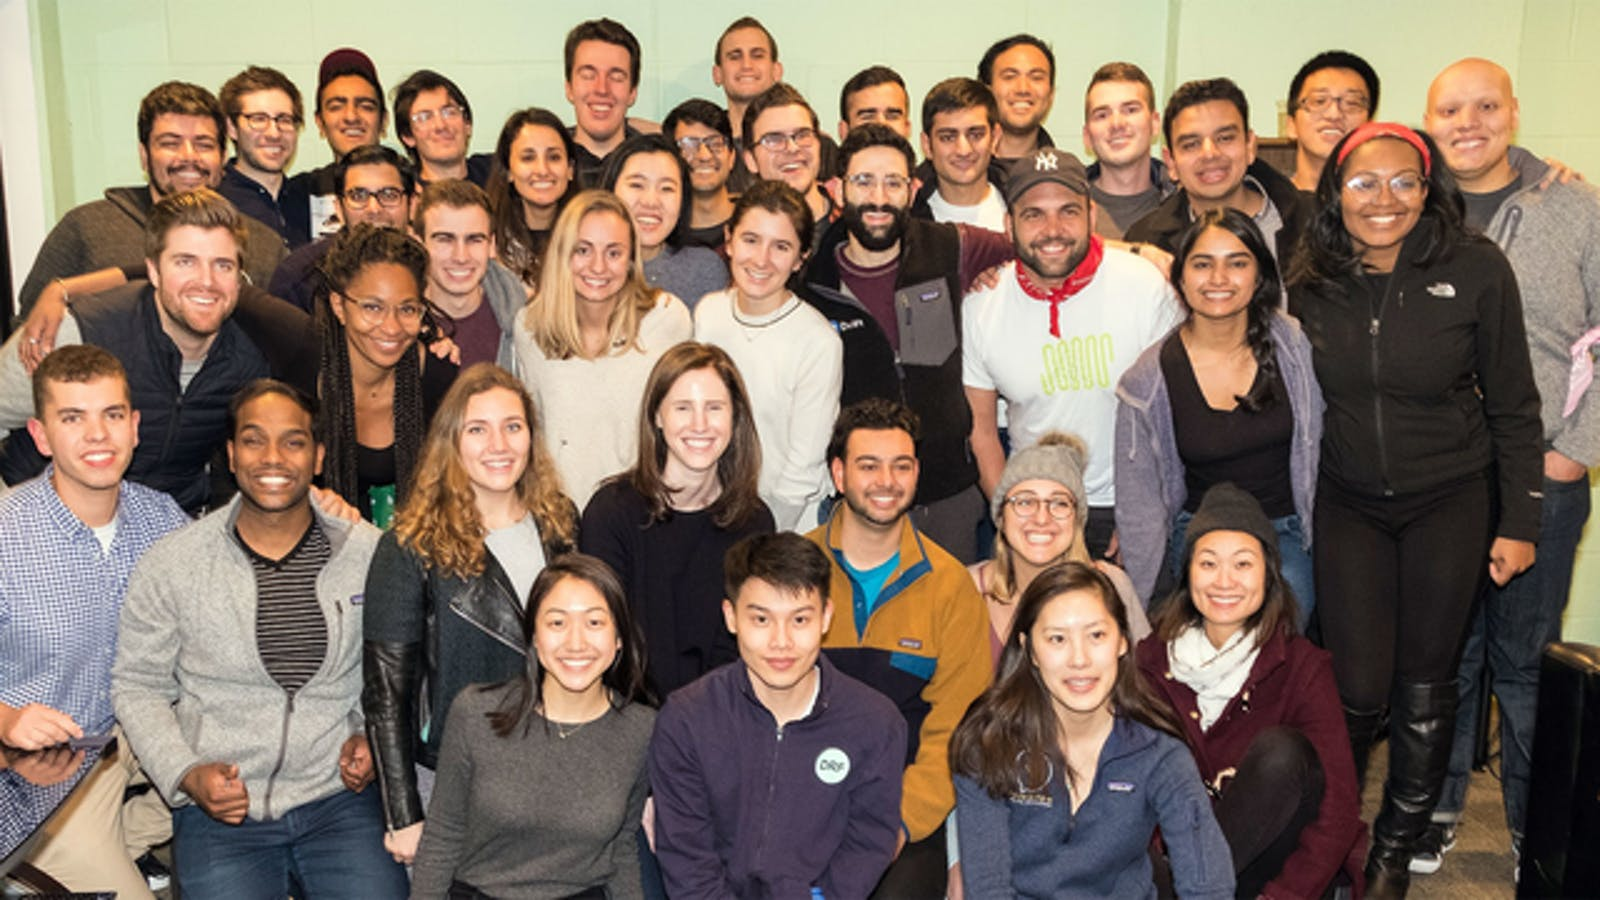 The Dorm Room Fund team. Photo by Dorm Room Fund